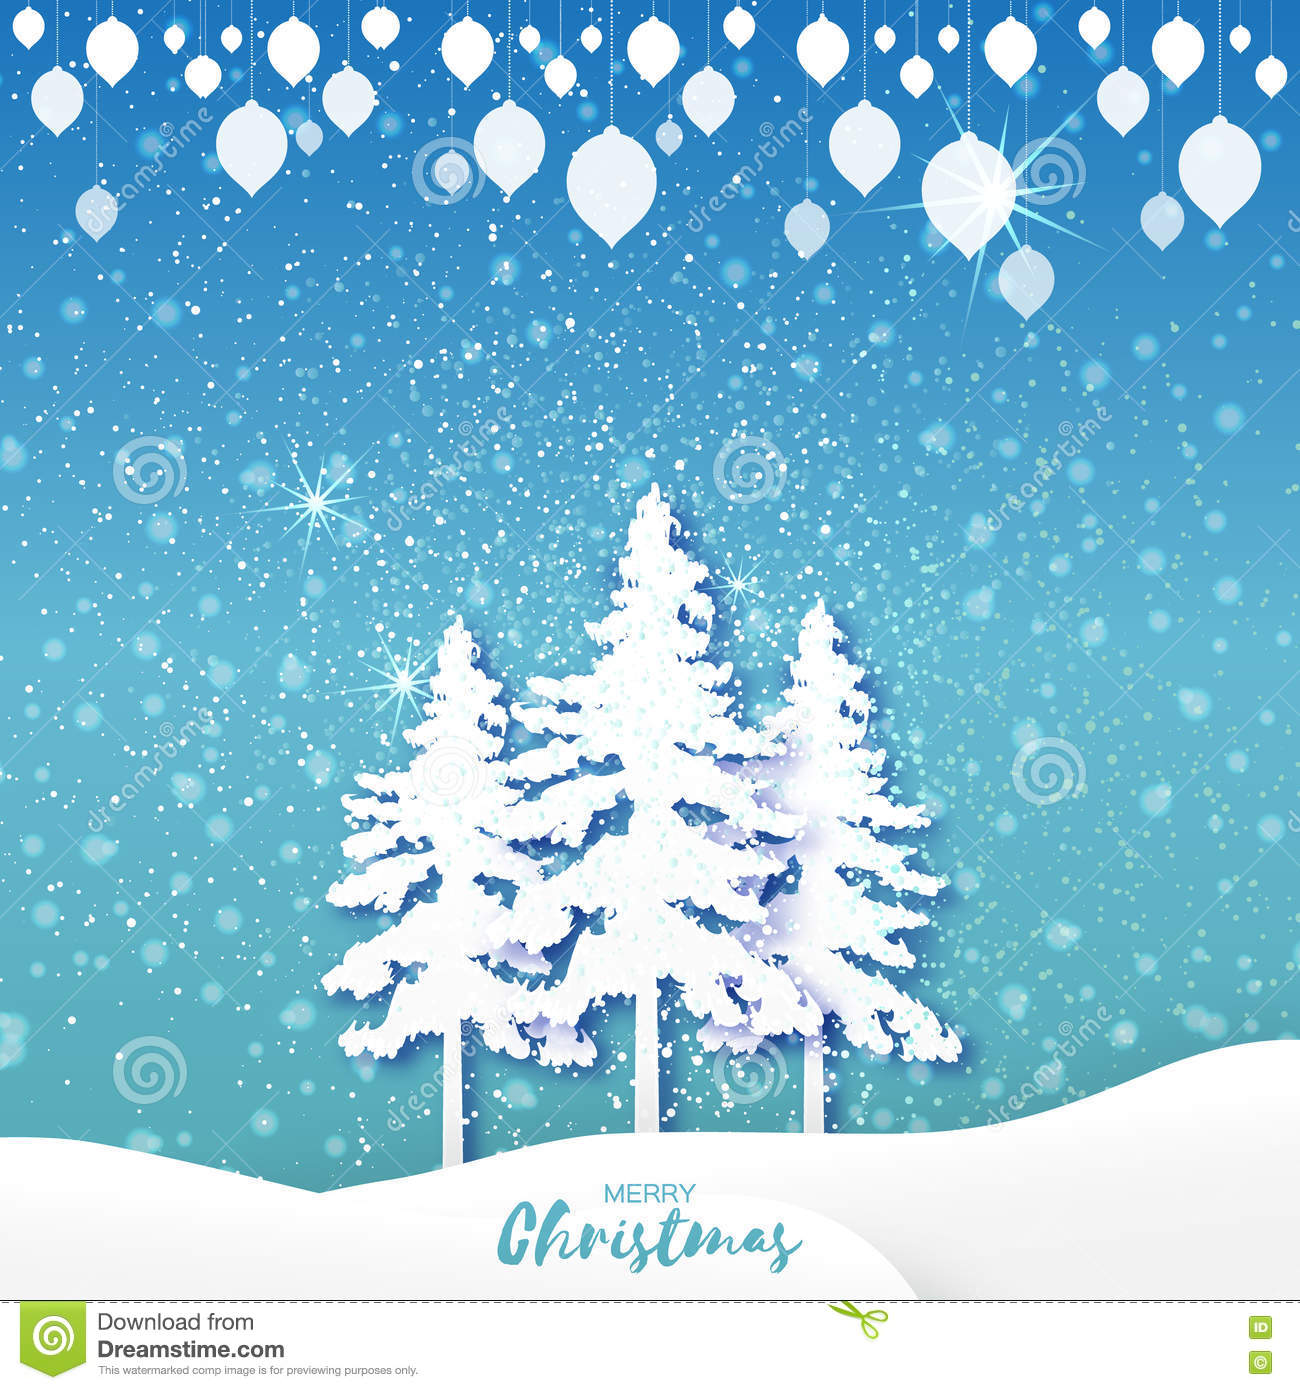 merry christmas greeting card with xmas tree garland and